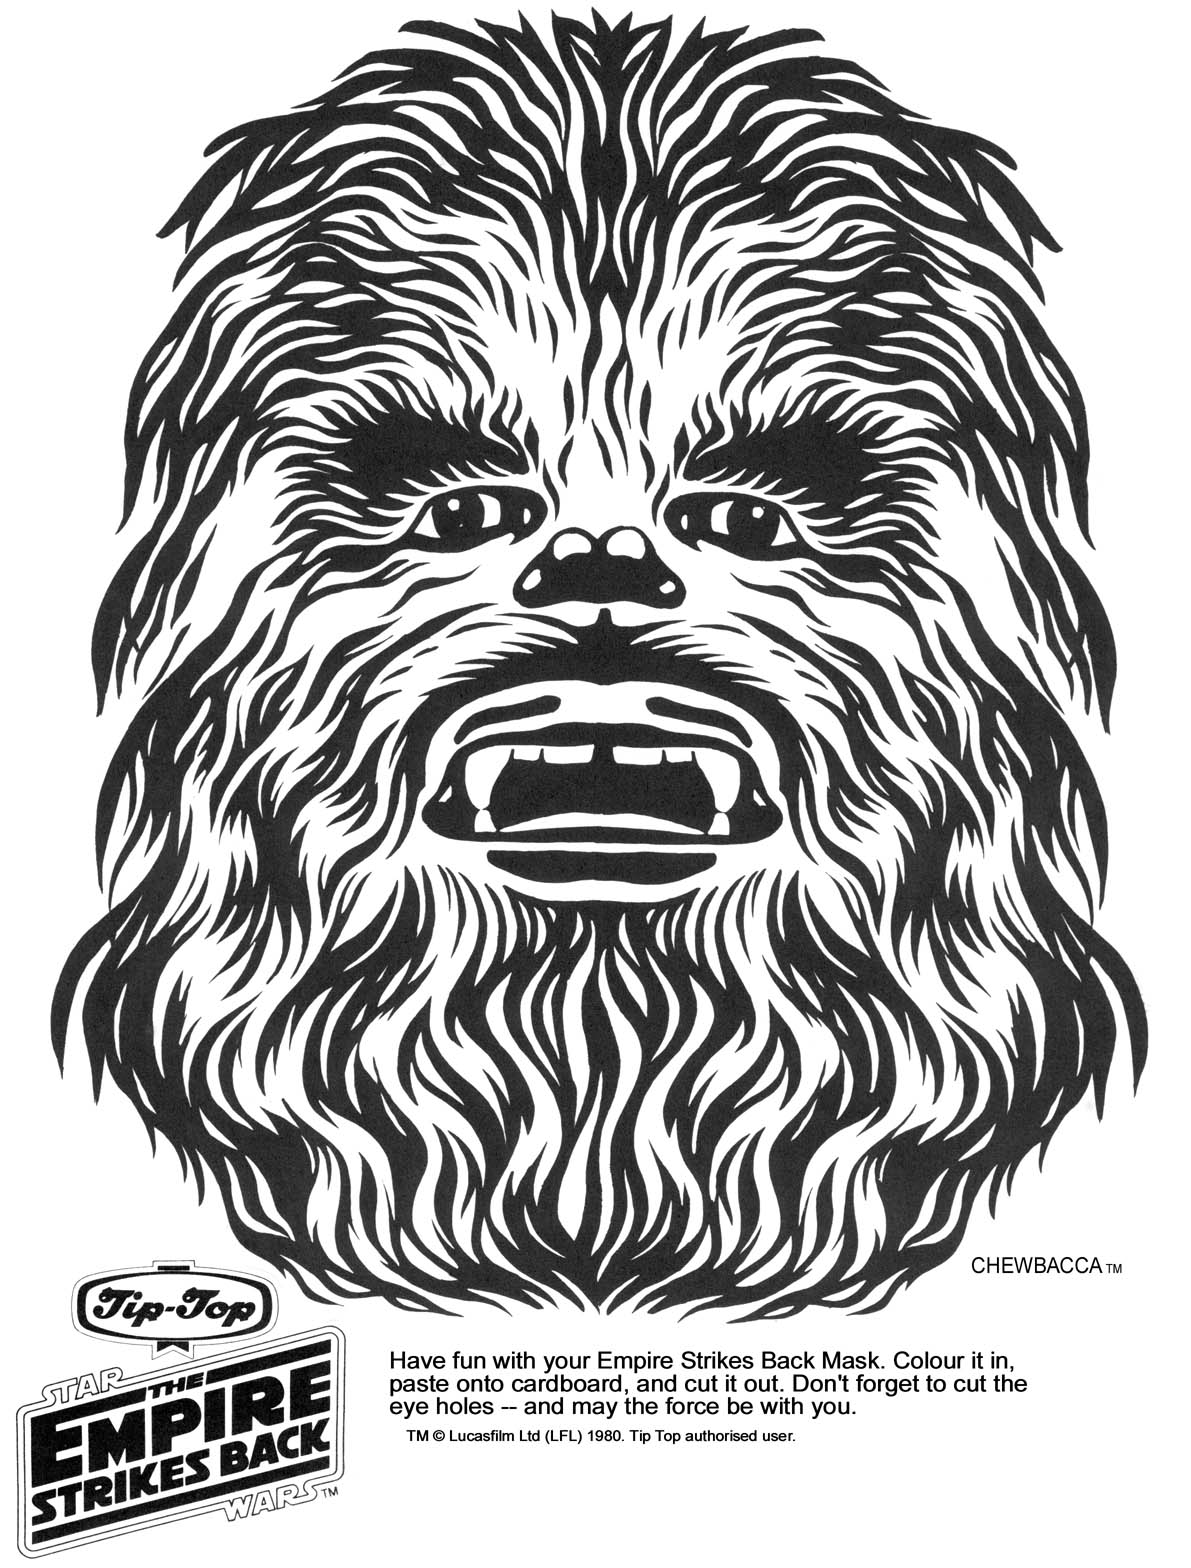 7 Images of Chewbacca Star Wars Printable Masks